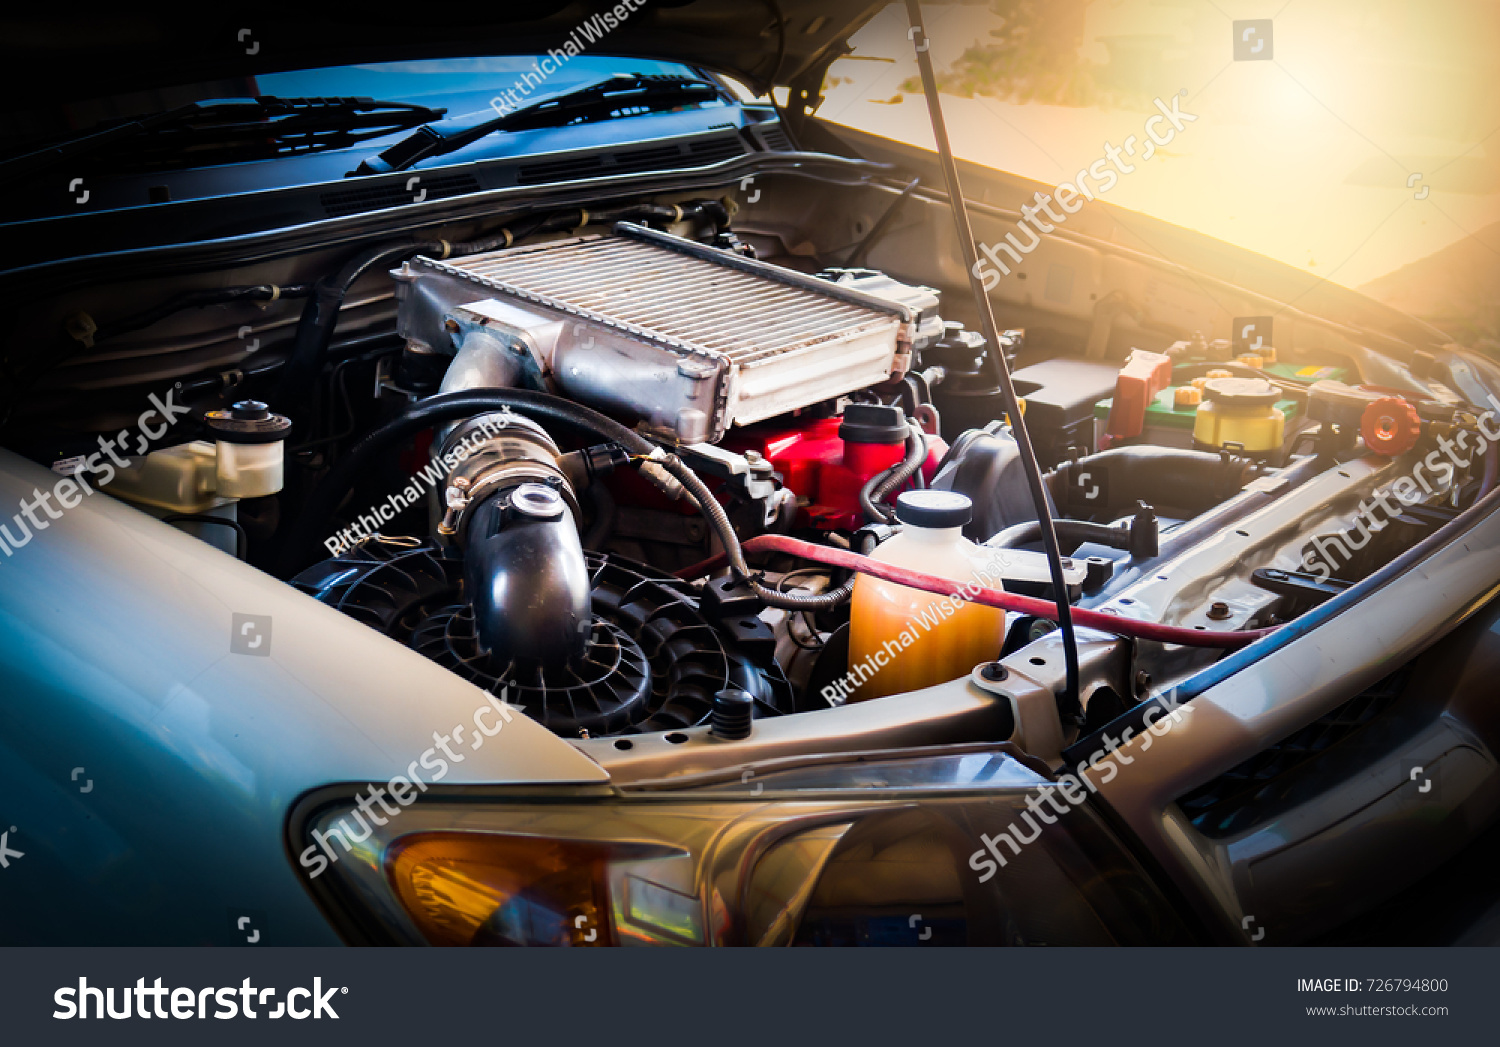 Car crash open hood car mechanic to check condition of damage. See the radiator cooling panel Engine and electronic system for mechanic to check damage thoroughly to repair engine to complete for use. #726794800